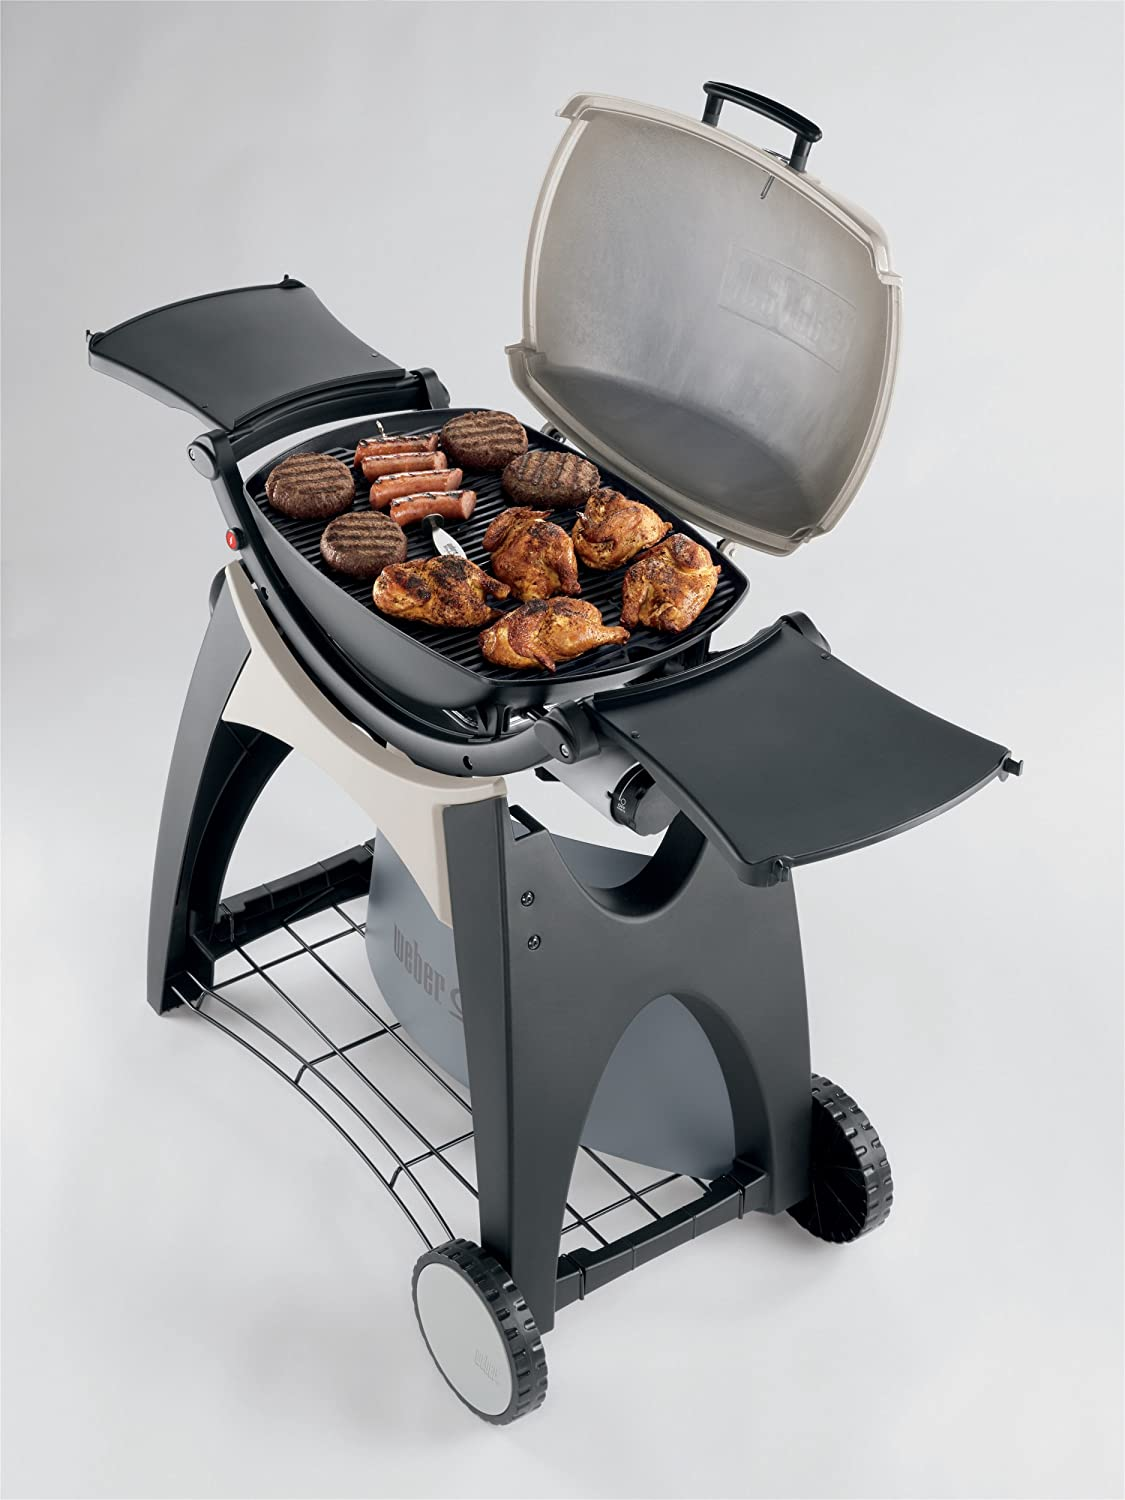 Amazon.com: Weber 566002 Q 220 Portable 280-Square-Inch 12000-BTU  Liquid-Propane Gas Grill (Older Model): Garden & Outdoor